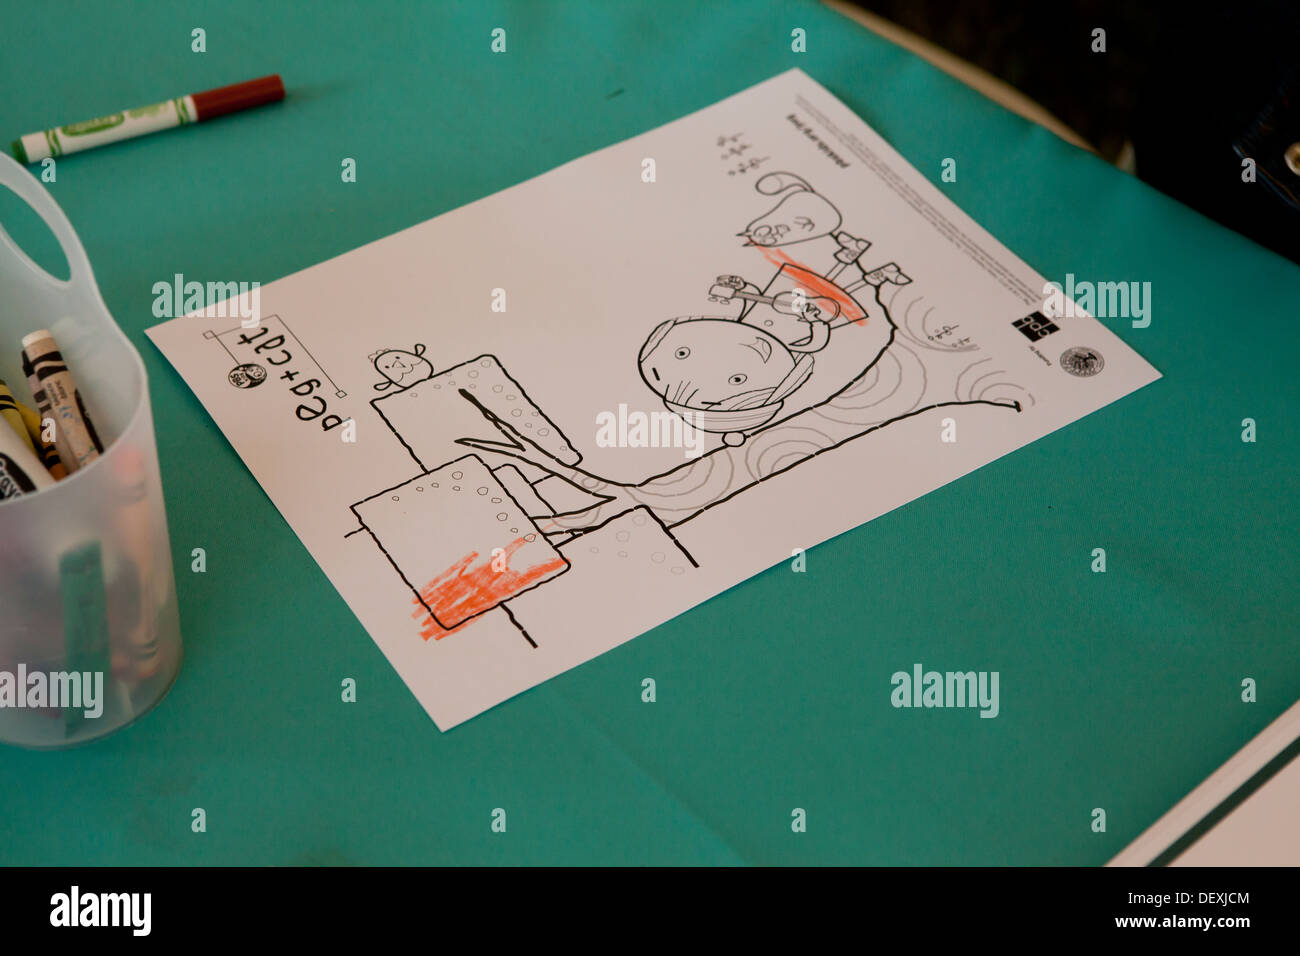 Kids Coloring Stock Photos & Kids Coloring Stock Images - Alamy